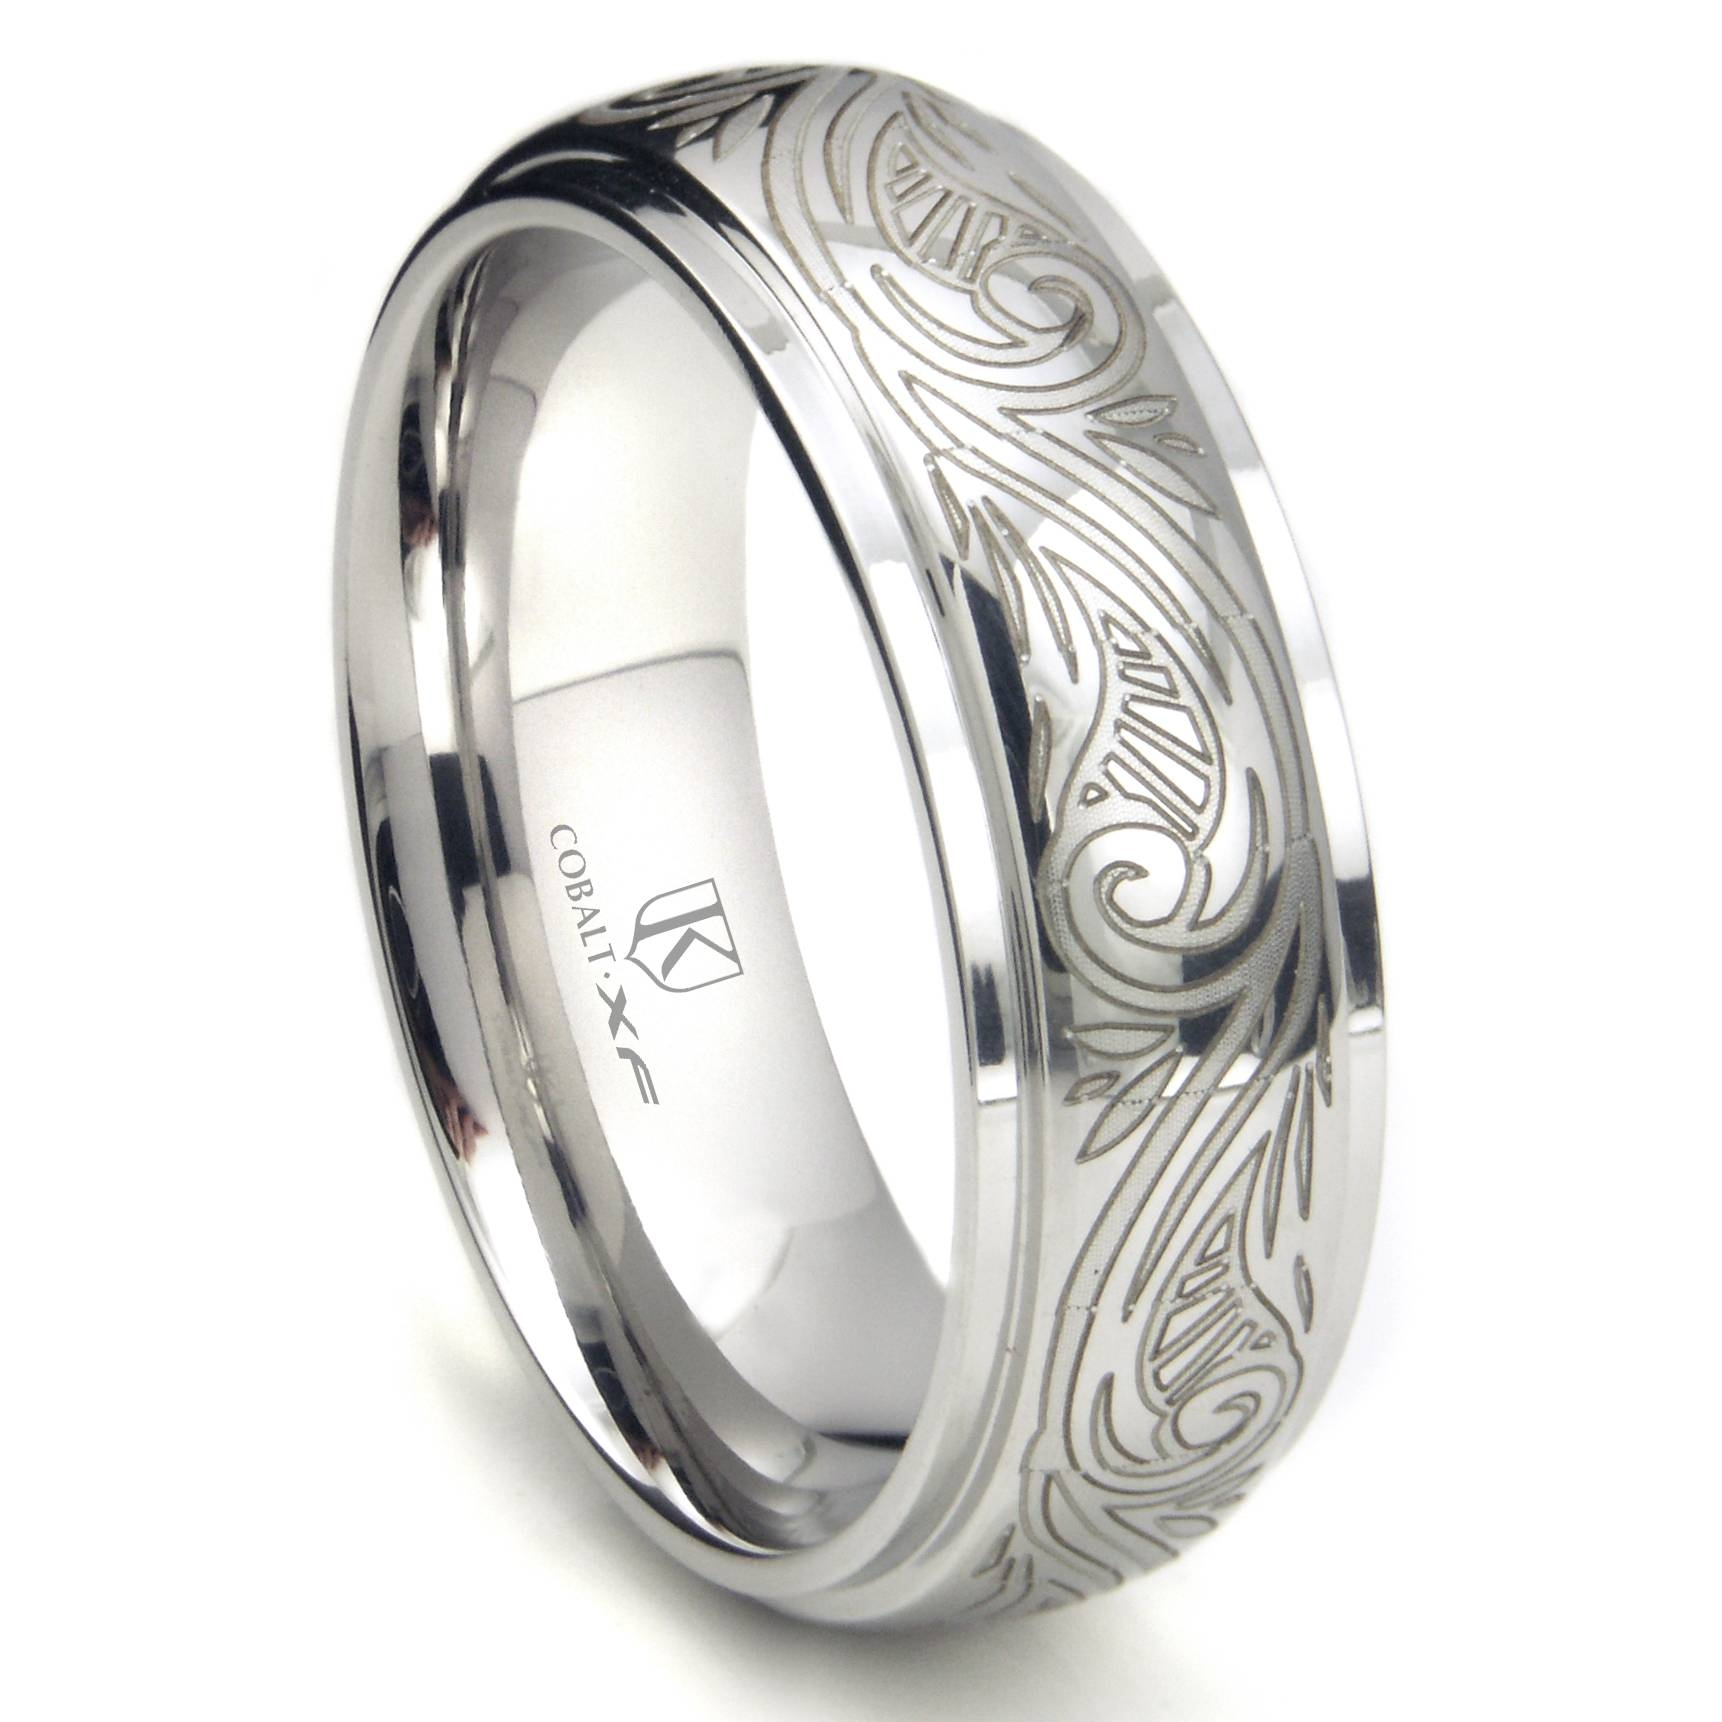 Cobalt Xf Chrome 8Mm Laser Engraved Paisley Motif Dome Wedding With Regard To Engraved Wedding Bands (View 2 of 15)